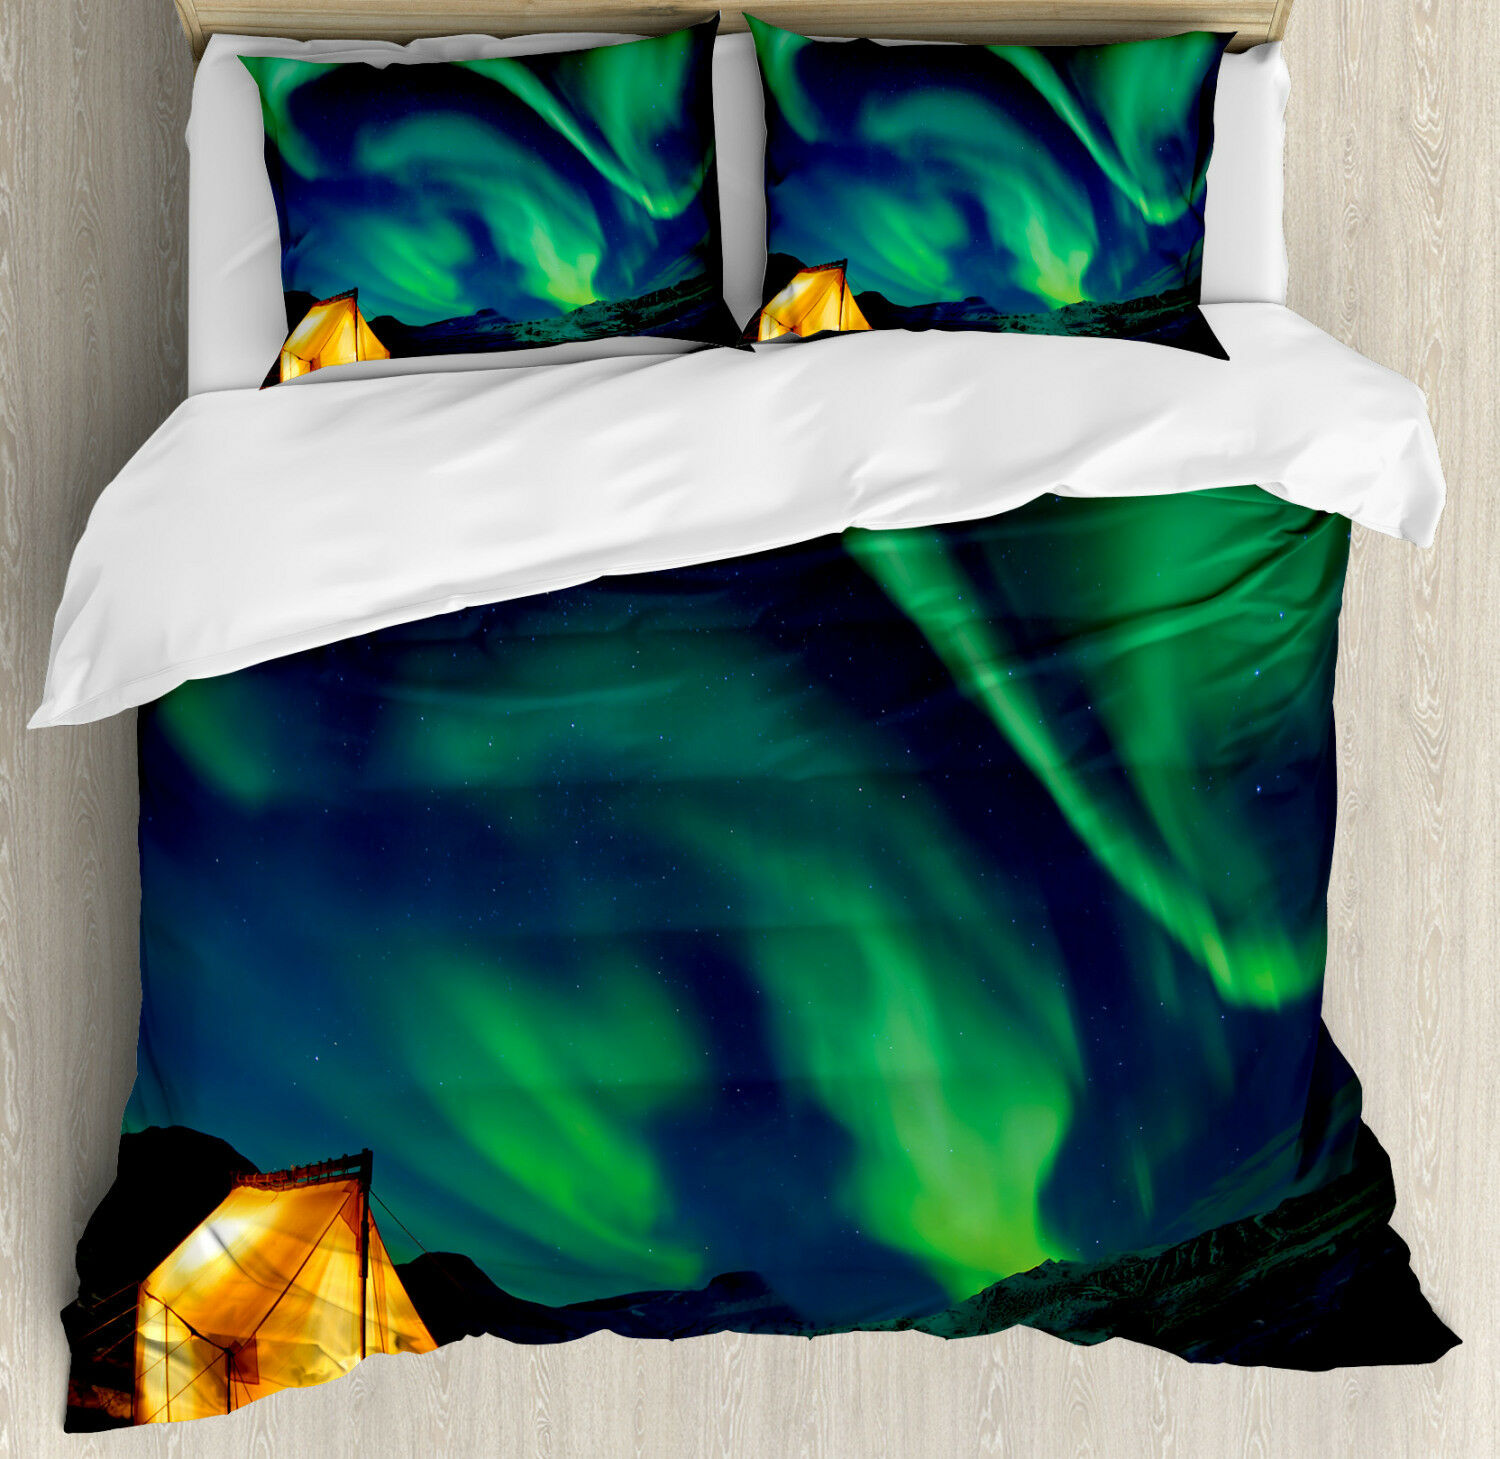 Green bluee Duvet Cover Set with Pillow Shams Sky Nordic Camping Print